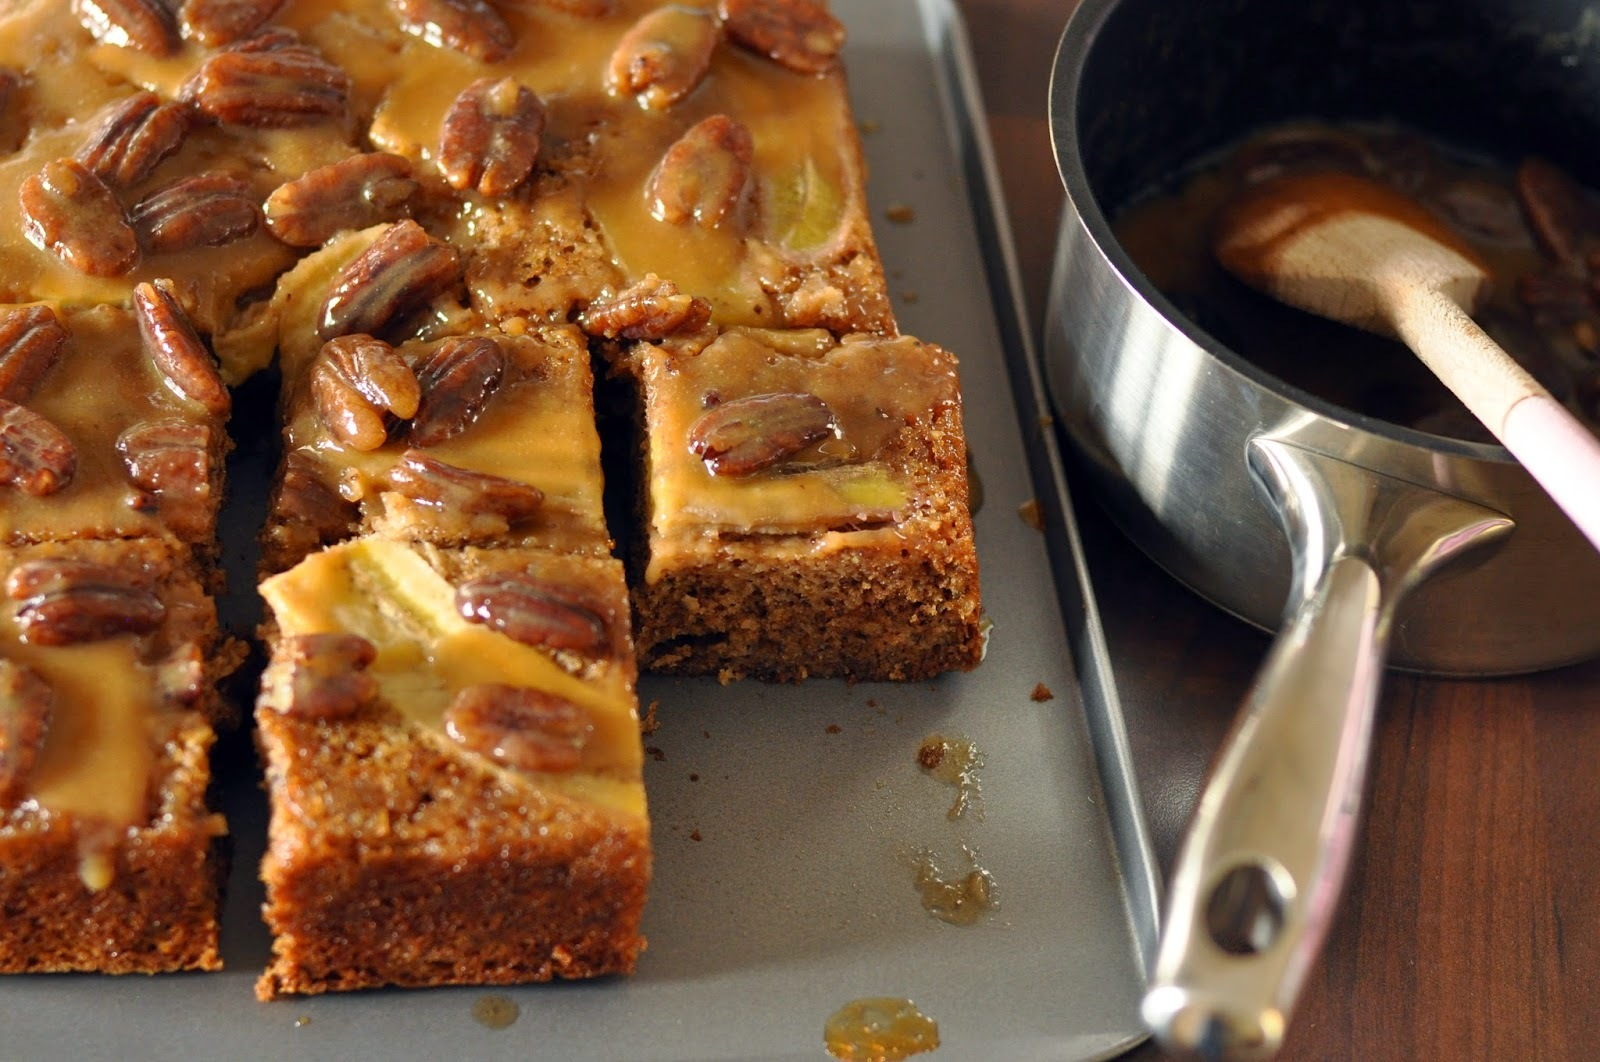 Upside-down Banana Cake with Maple-caramel Sauce